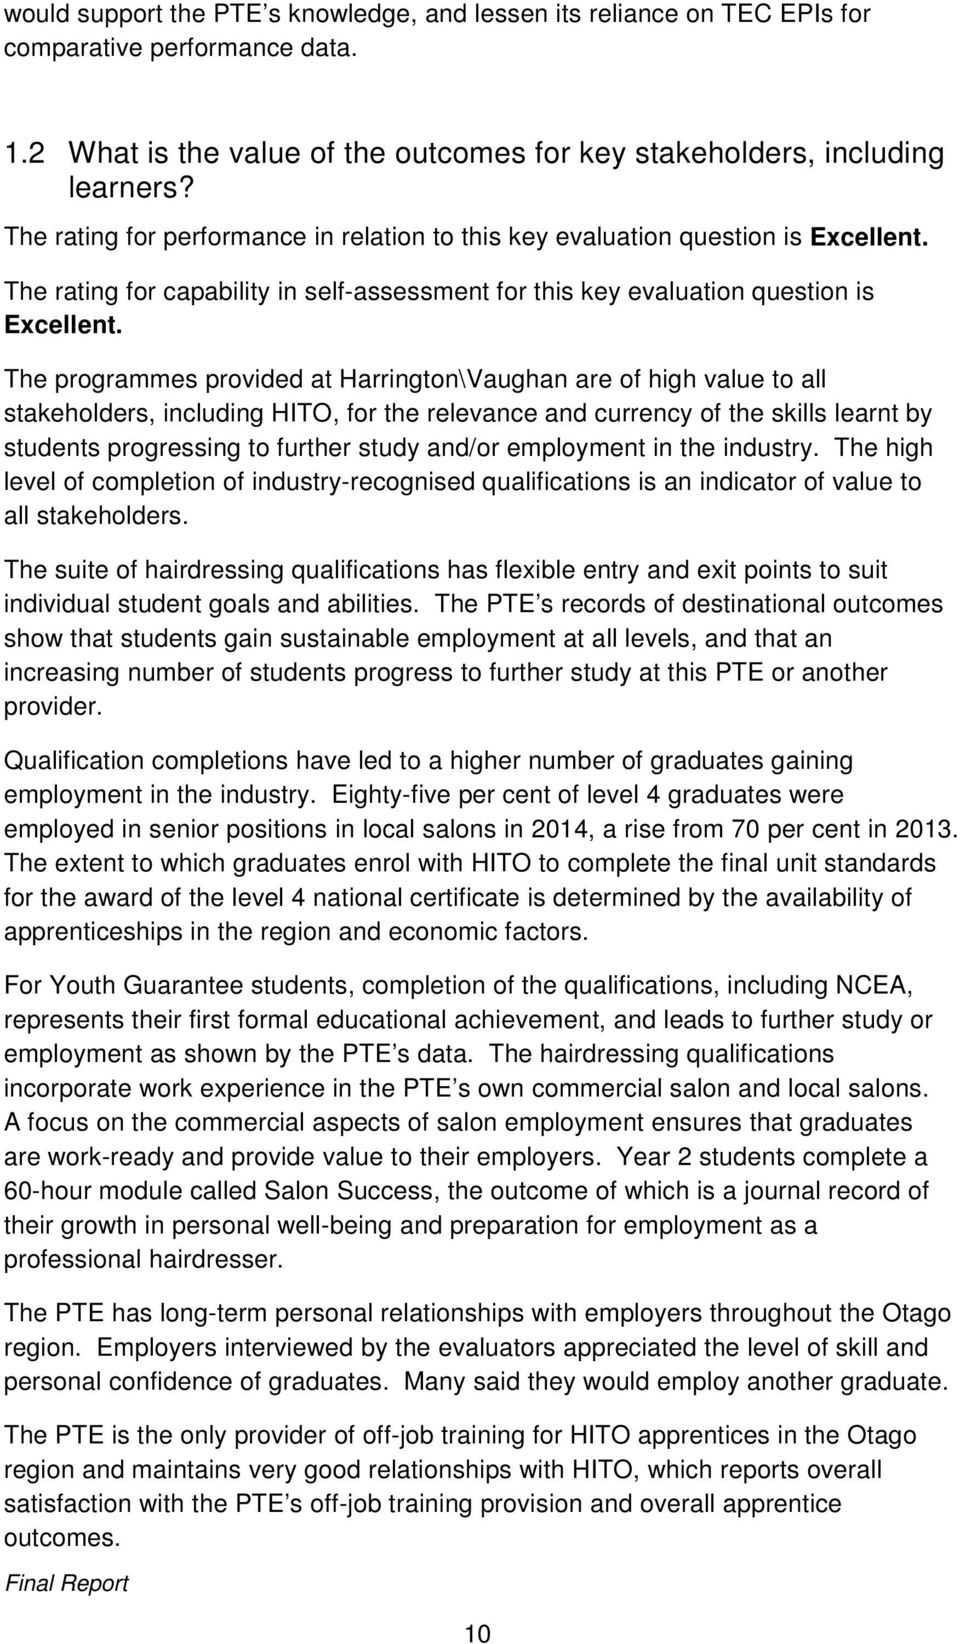 The programmes provided at Harrington\Vaughan are of high value to all stakeholders, including HITO, for the relevance and currency of the skills learnt by students progressing to further study